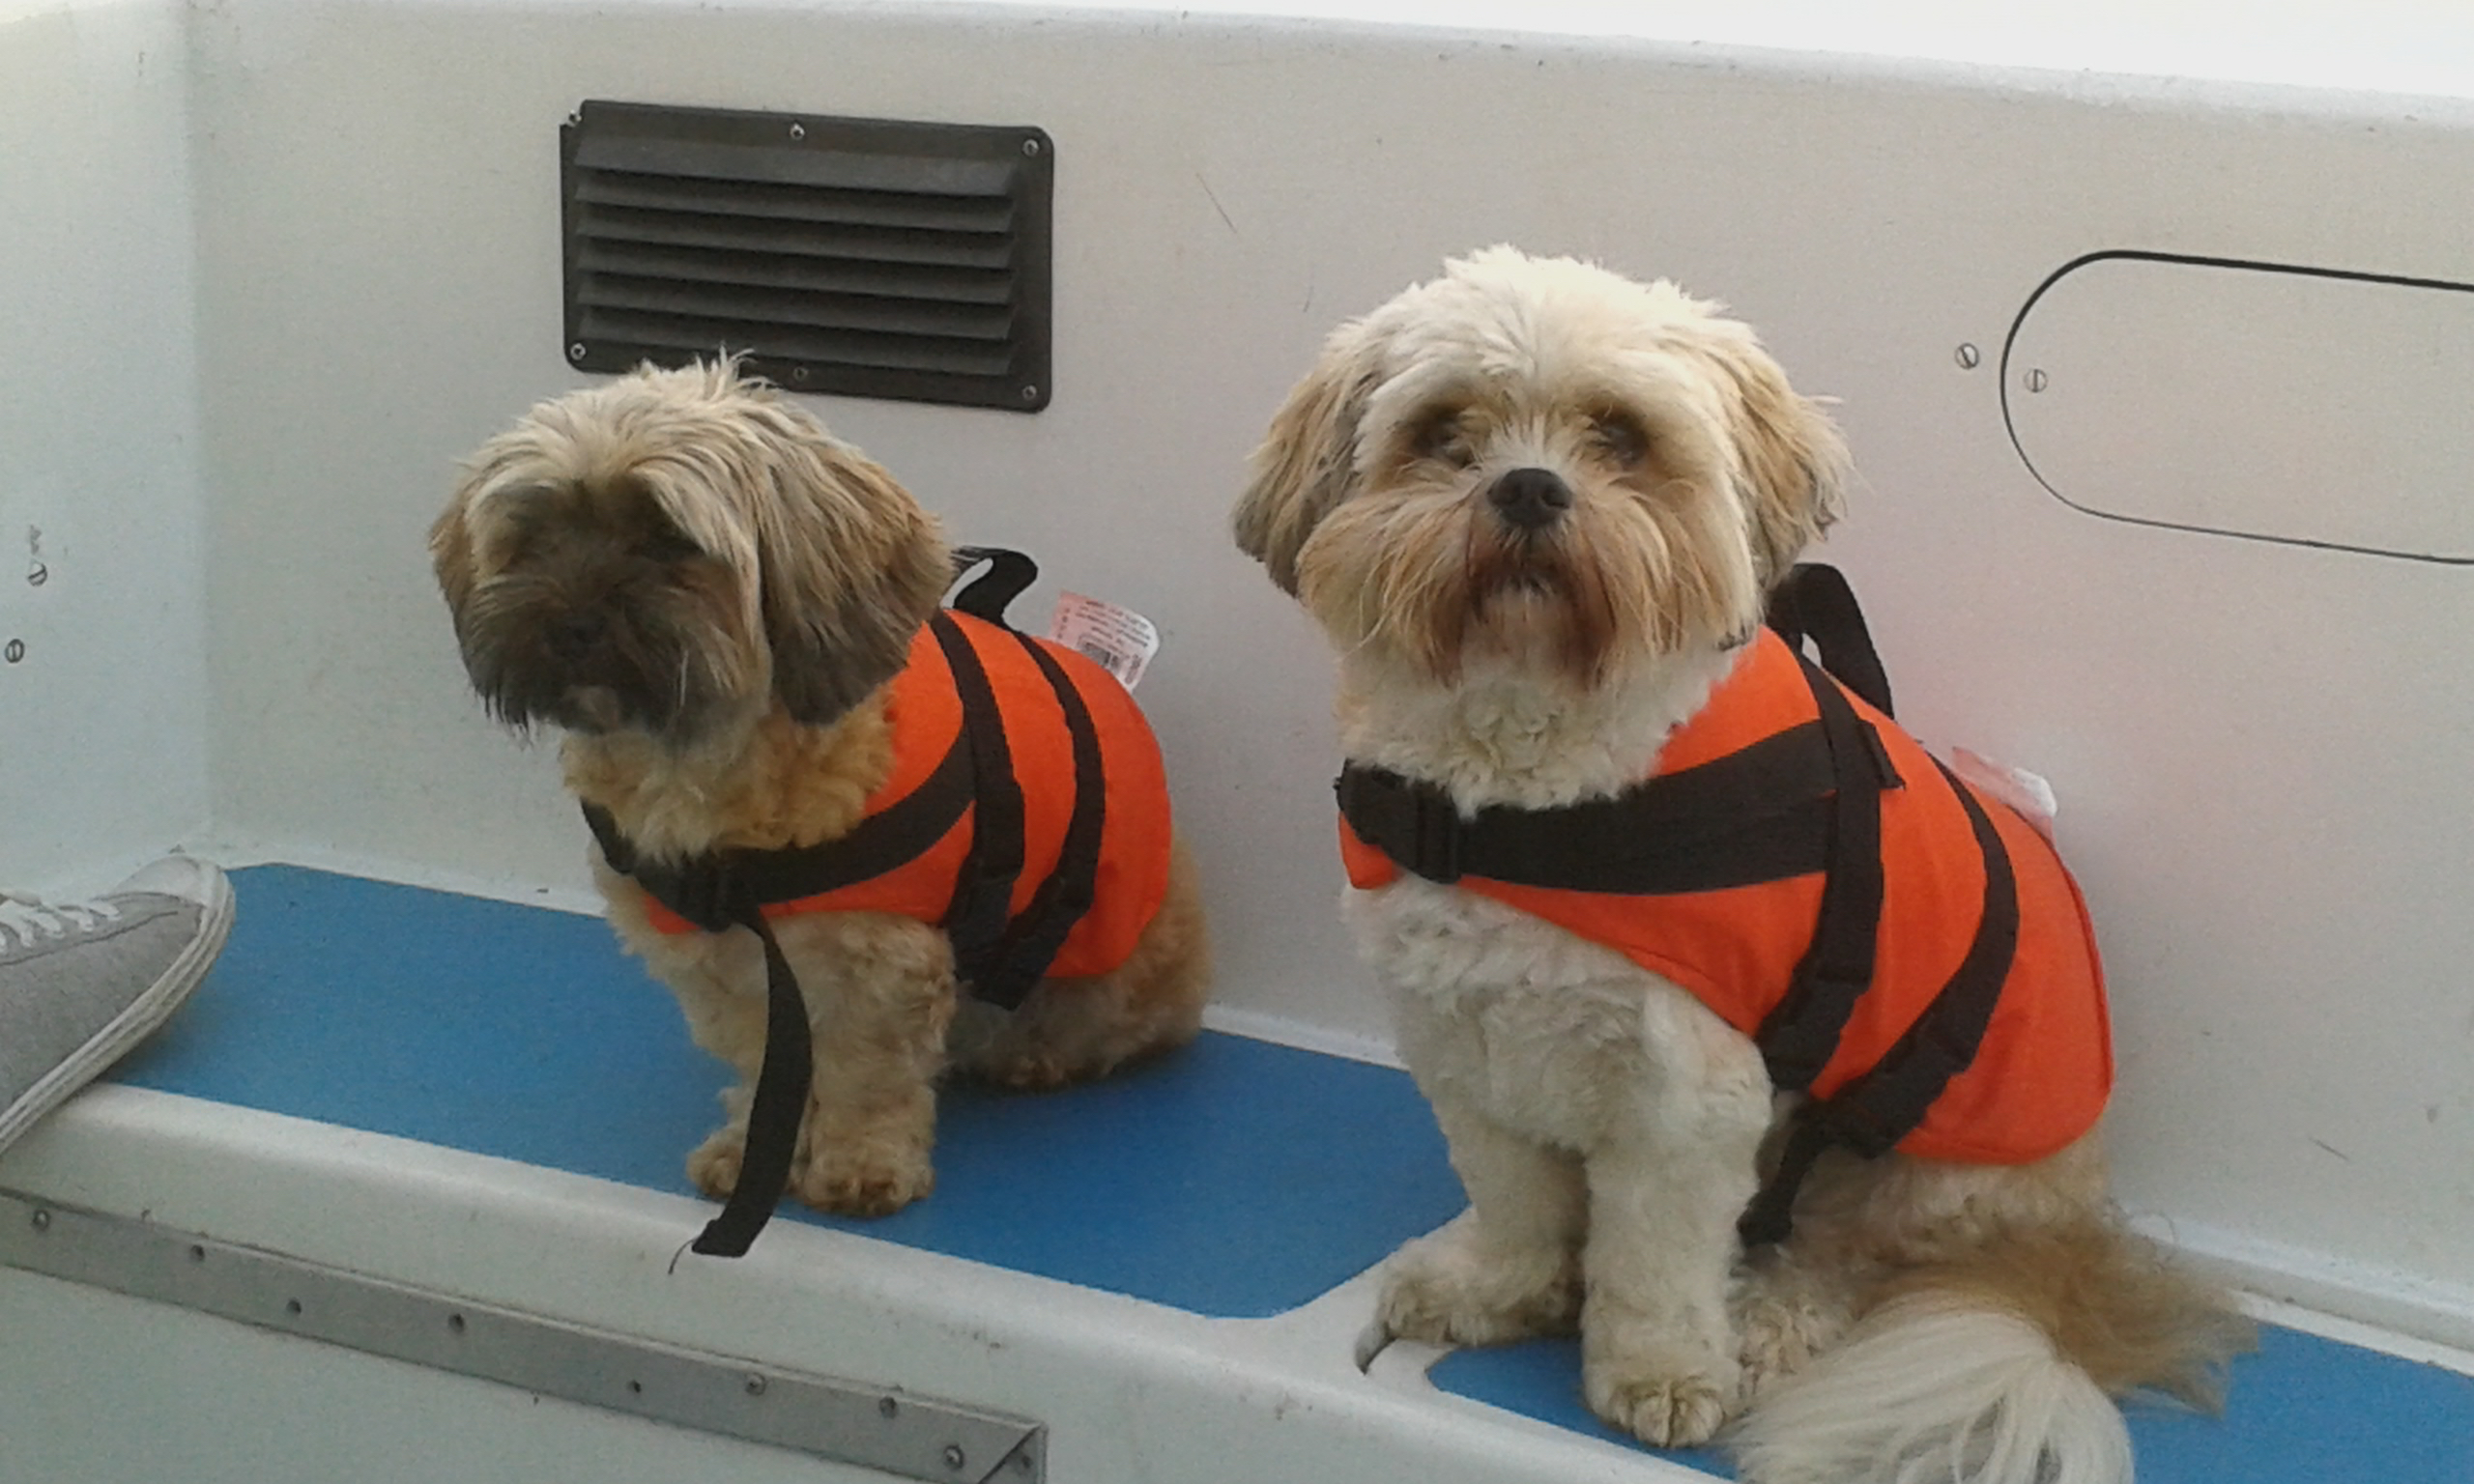 Looking for a place to take the pooch? Here at Richardson's we have Pet Friendly Boating Holidays!